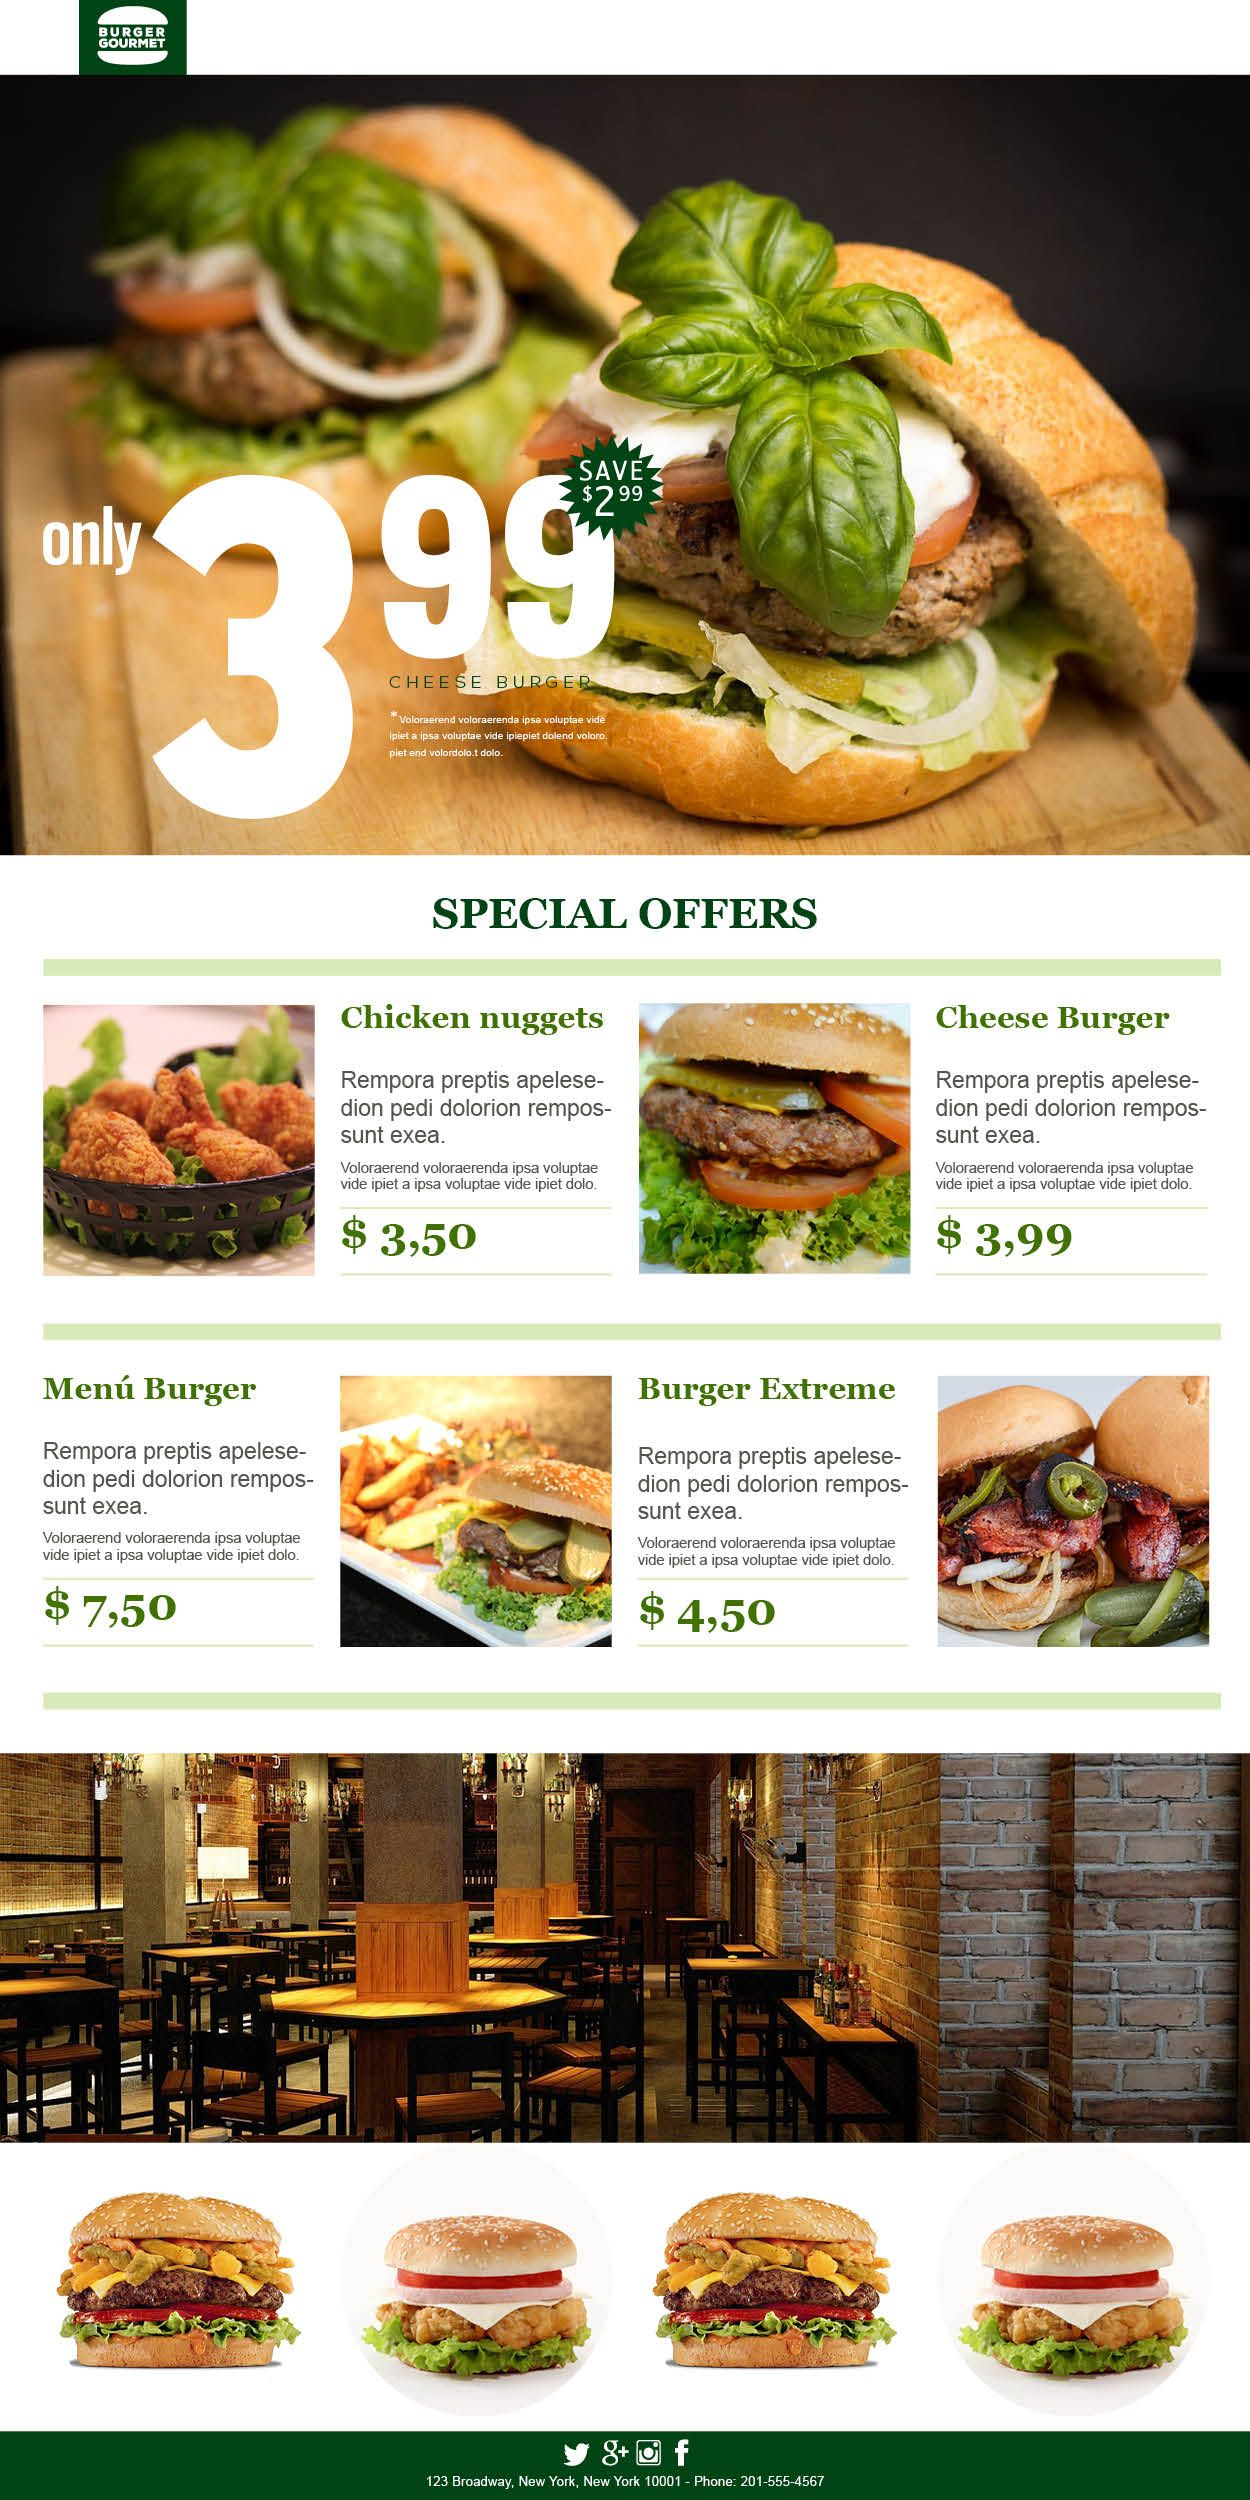 The Burger Campaign. Food service #Templates for successful ... on newsletter templates for middle school, newsletter templates for customer service, newsletter templates for 2nd grade,